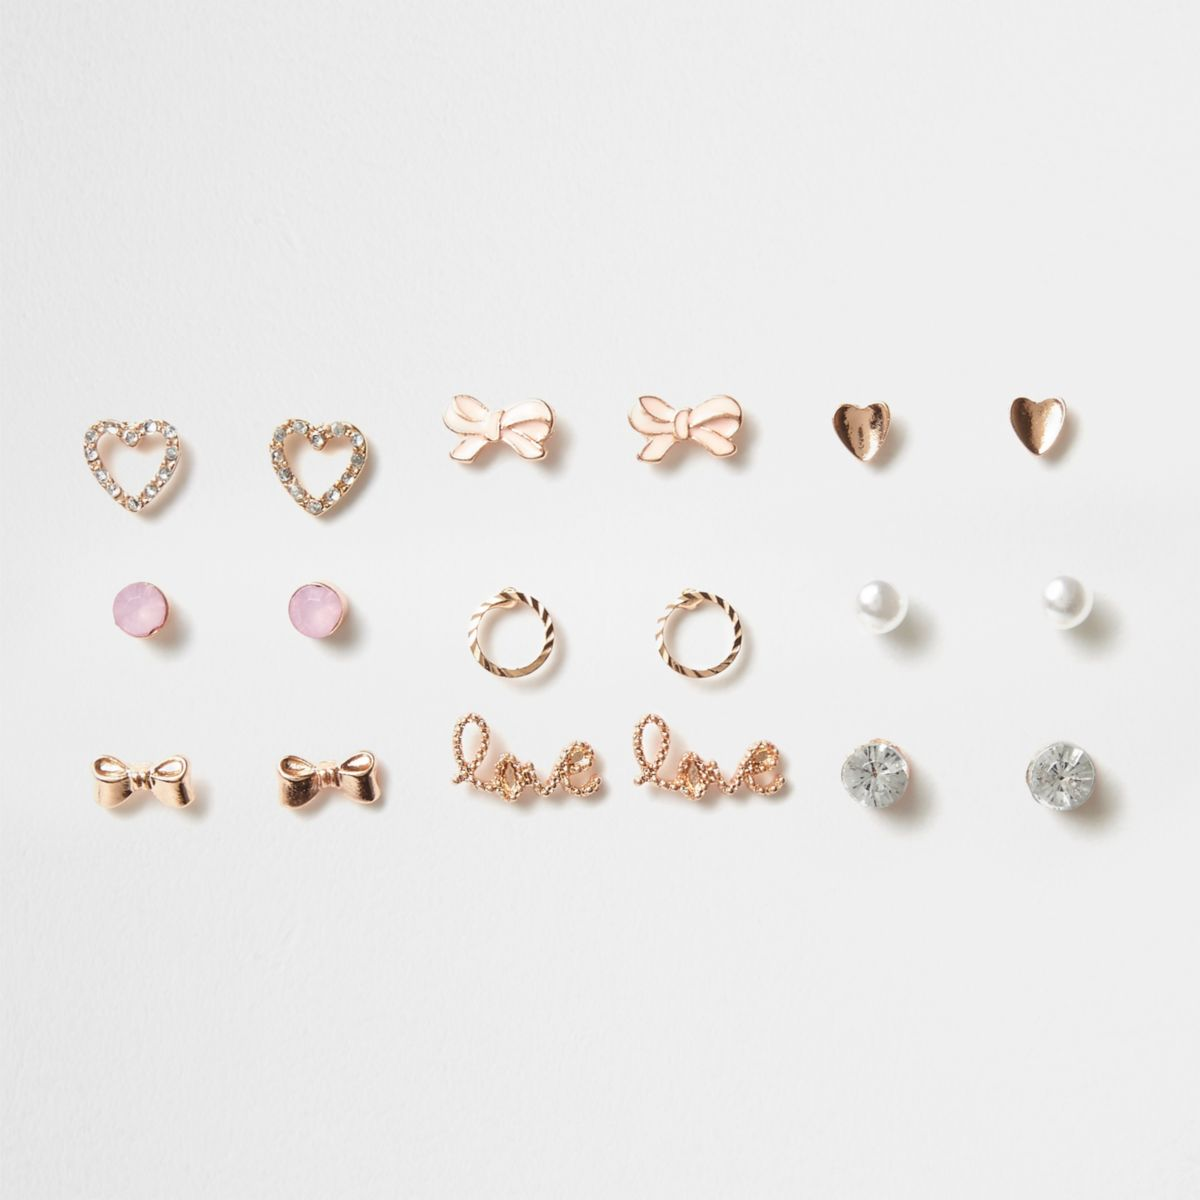 Girls rose gold tone heart stud earrings pack